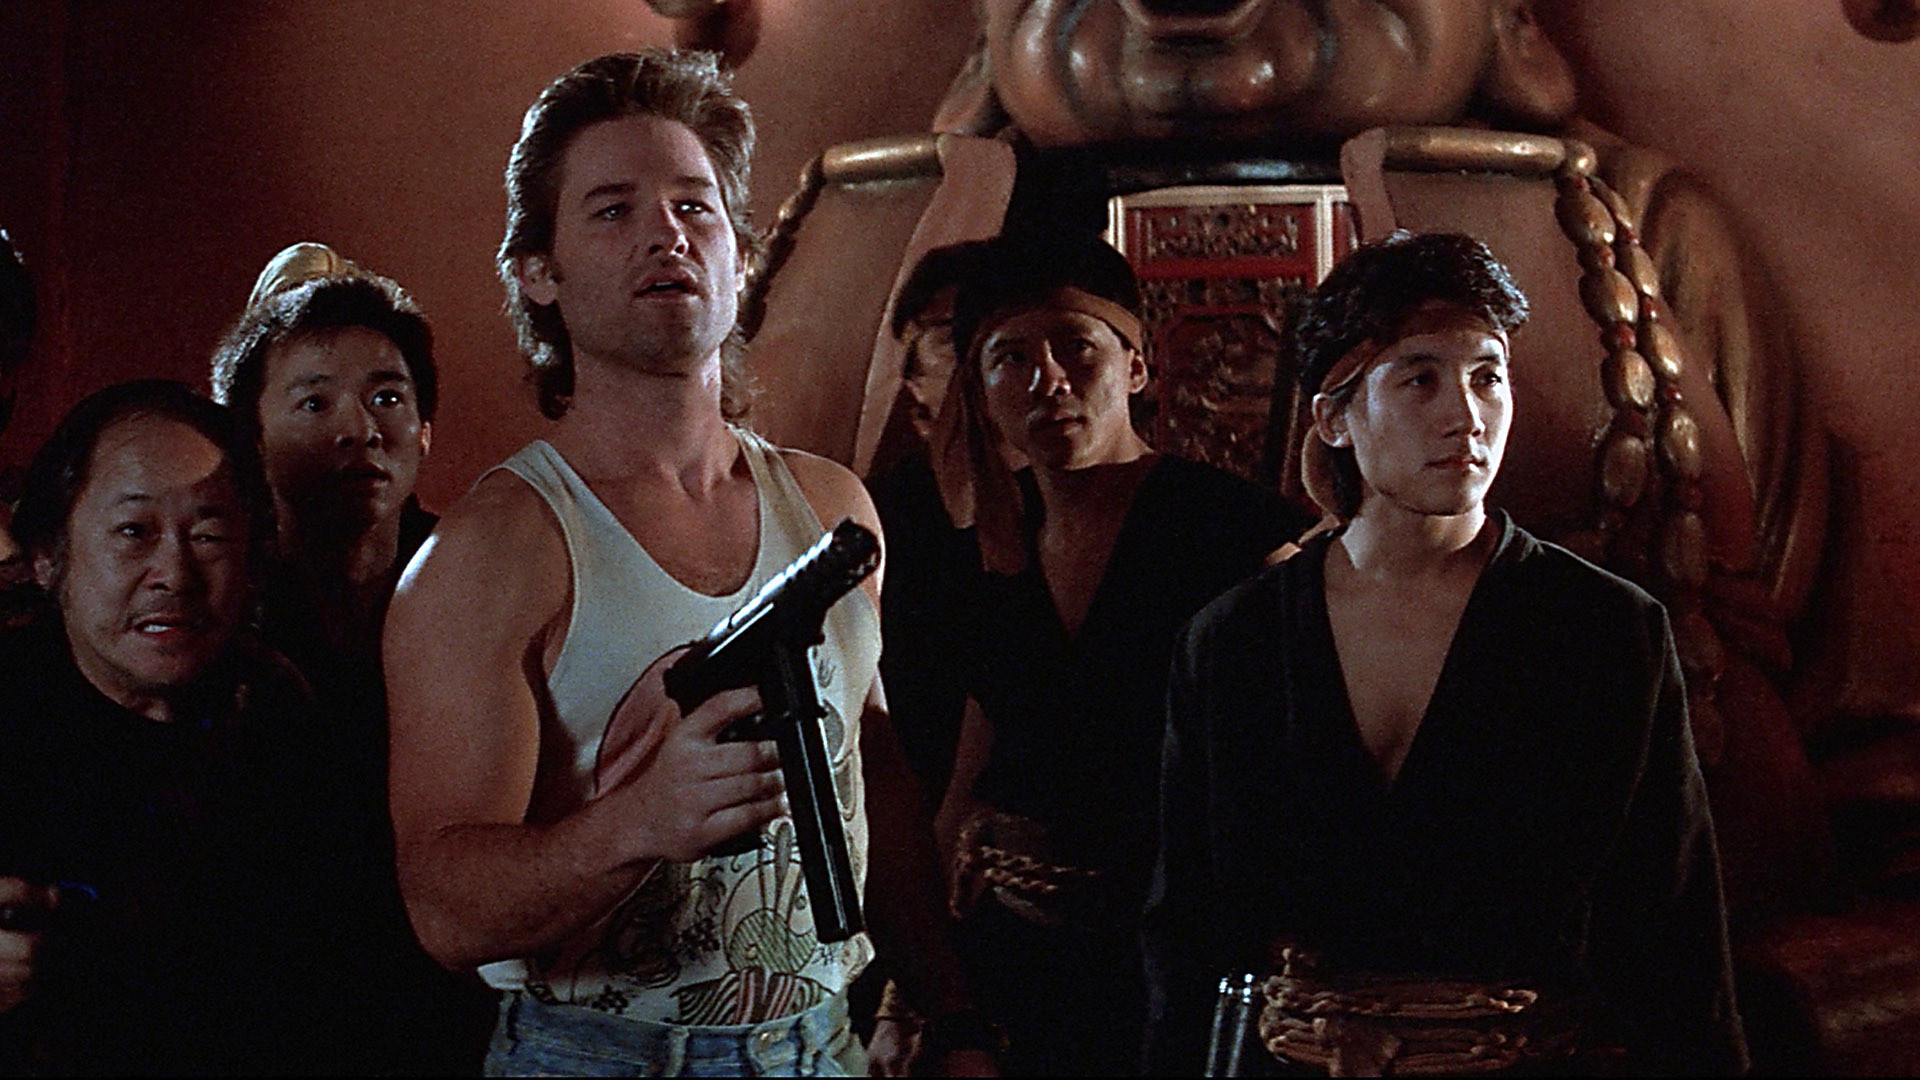 Images of Big Trouble In Little China | 1920x1080